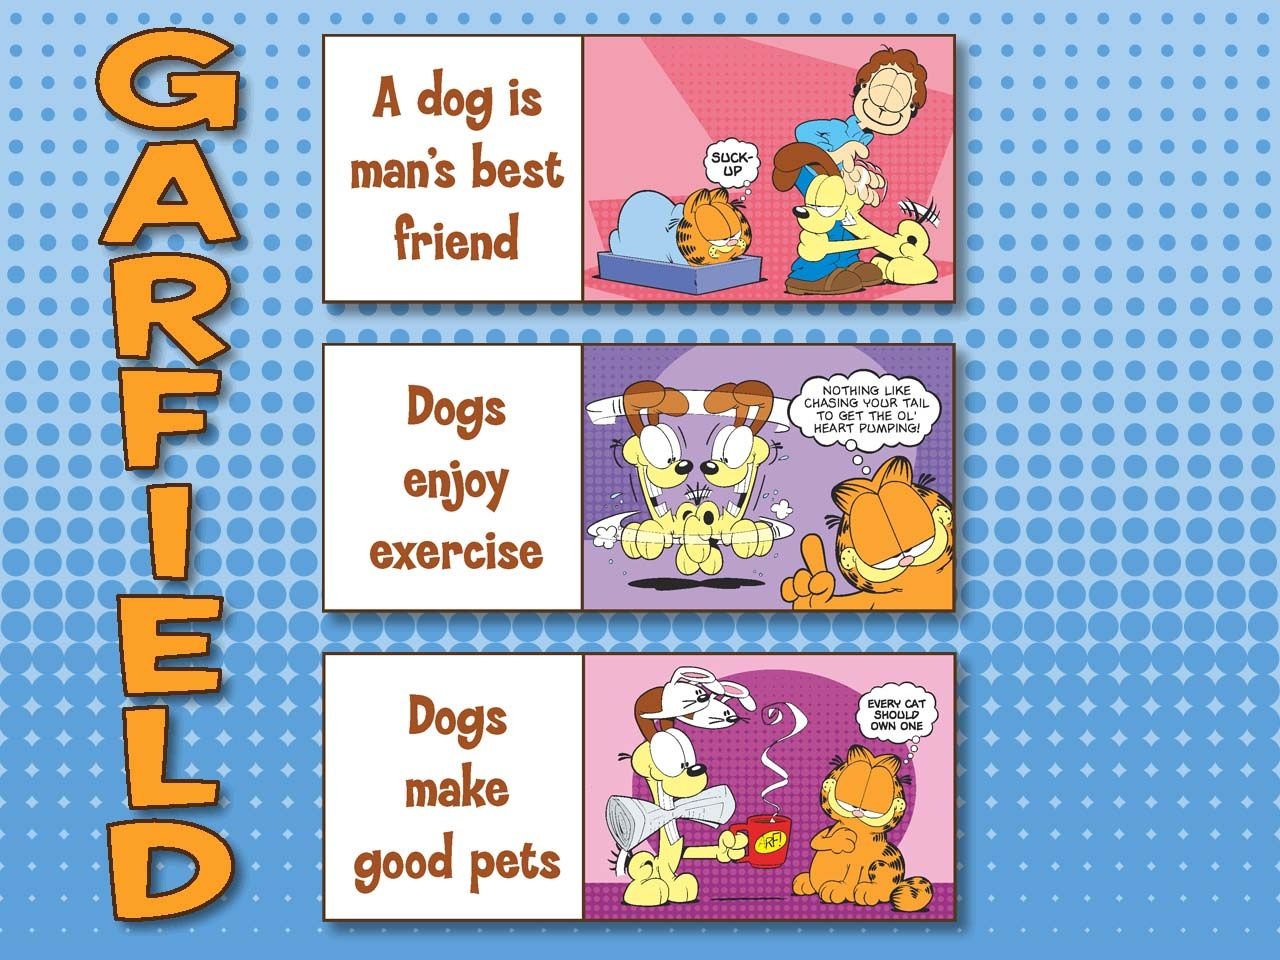 Garfield Slogans On Dogs Wallpaper 1280x960